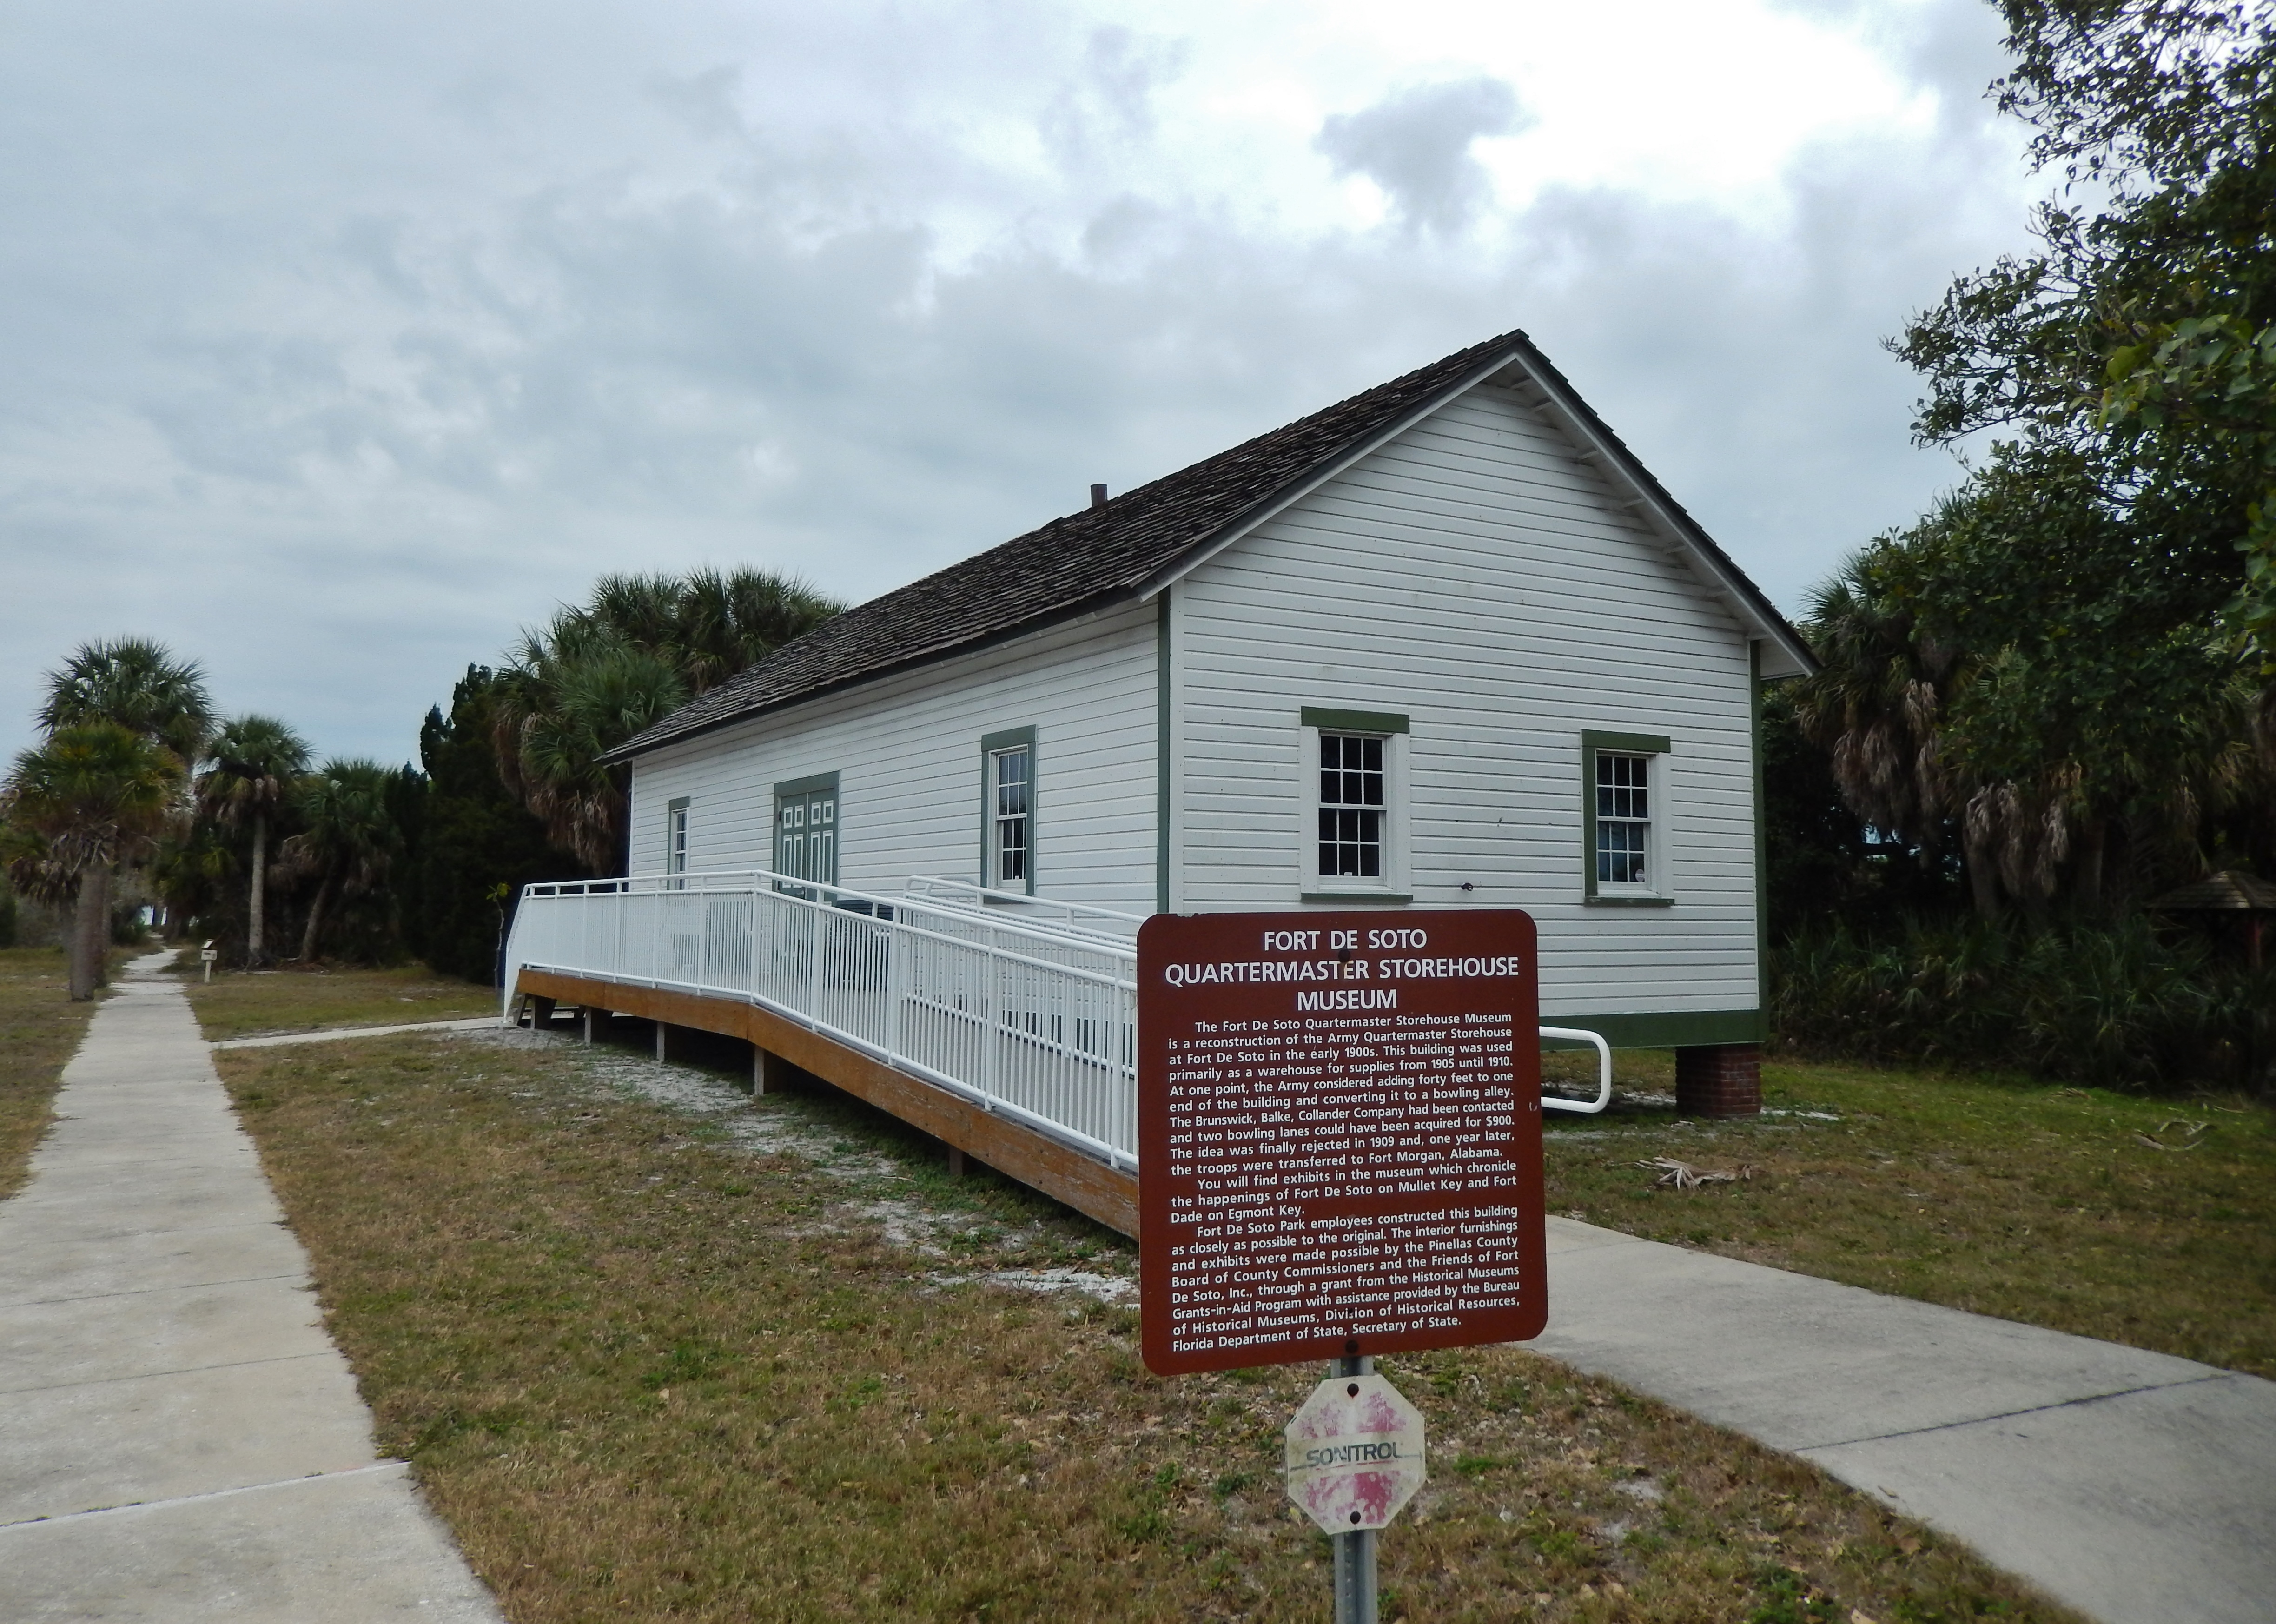 Fort De Soto Quartermaster Storehouse Museum (<i>marker in foreground</i>)